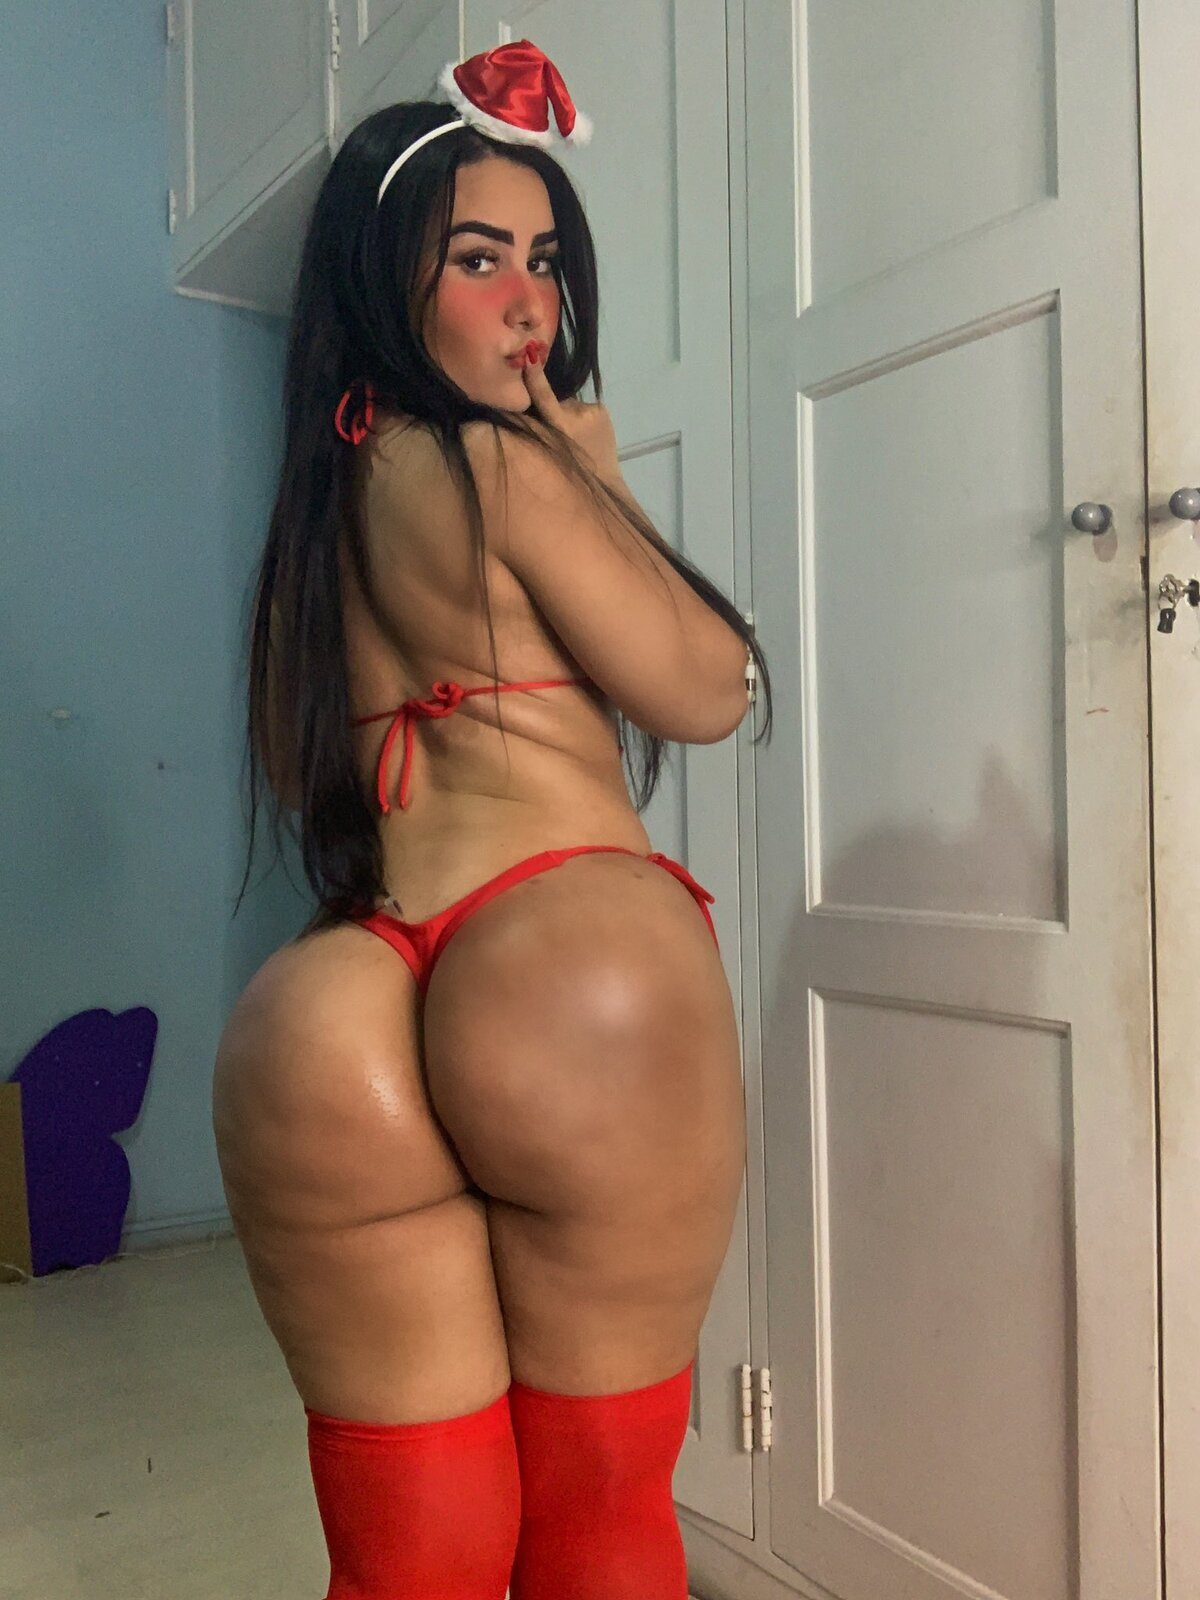 Victoria Matosa onlyfans nudes leaks thefappening.nu 34